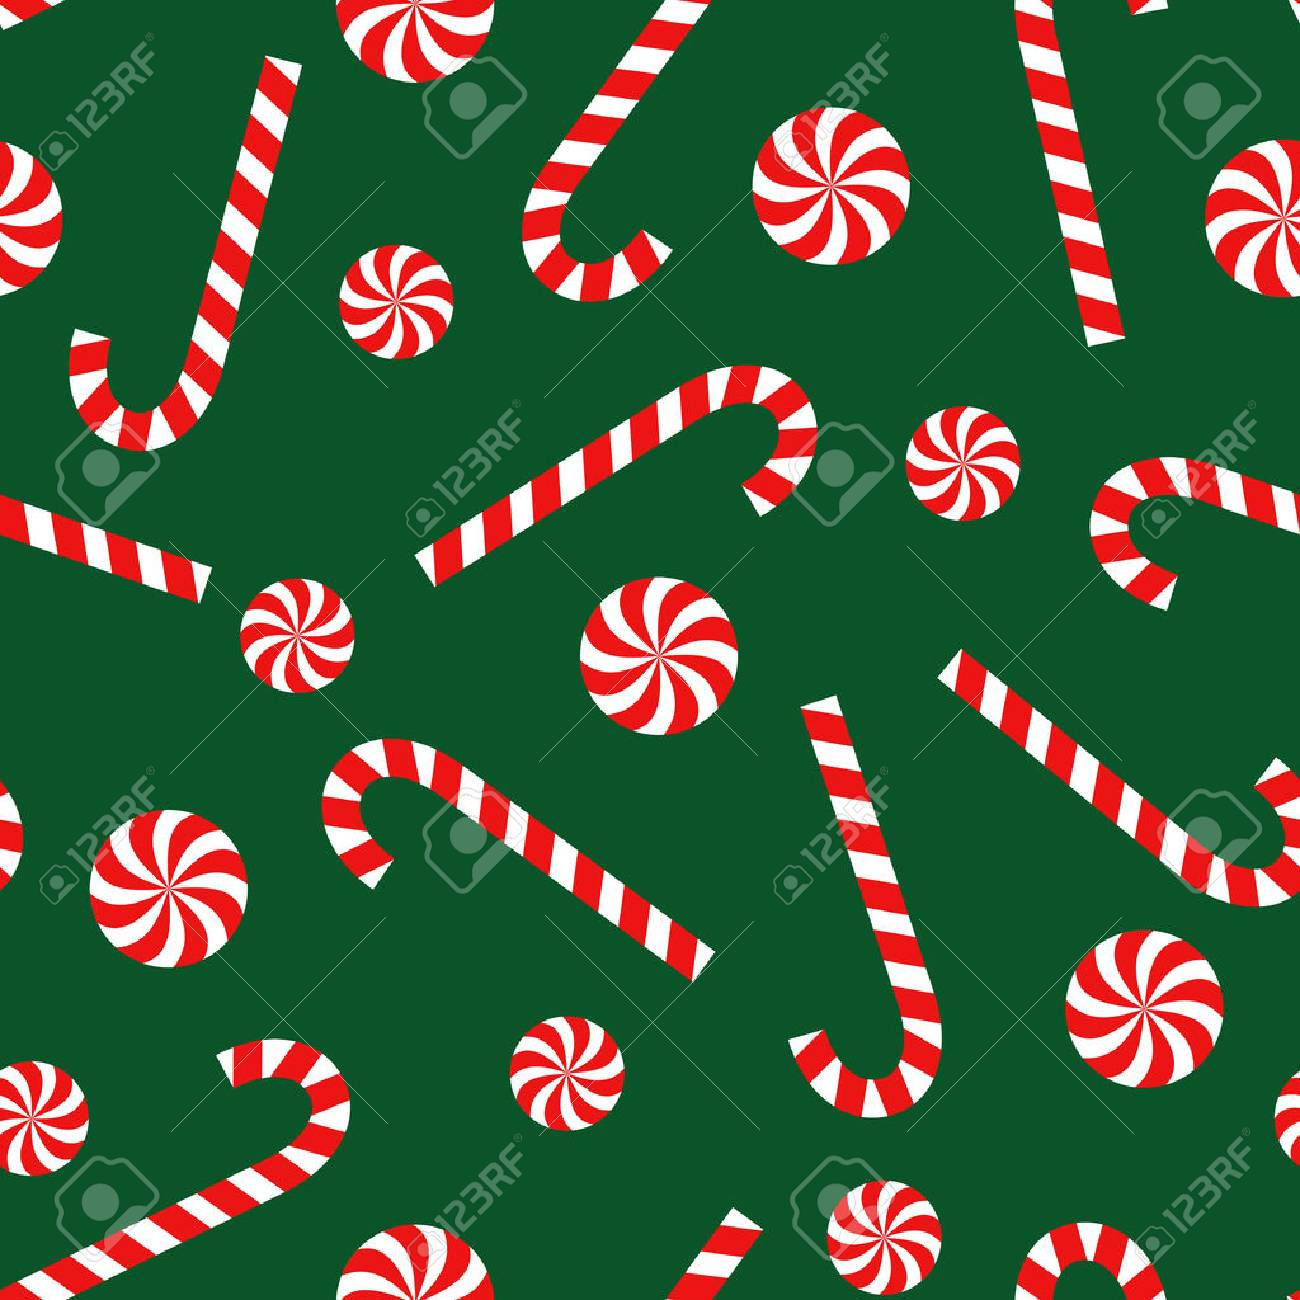 Candy Cane And Lollipop Seamless Christmas Pattern On Green Background Happy New Year Merry